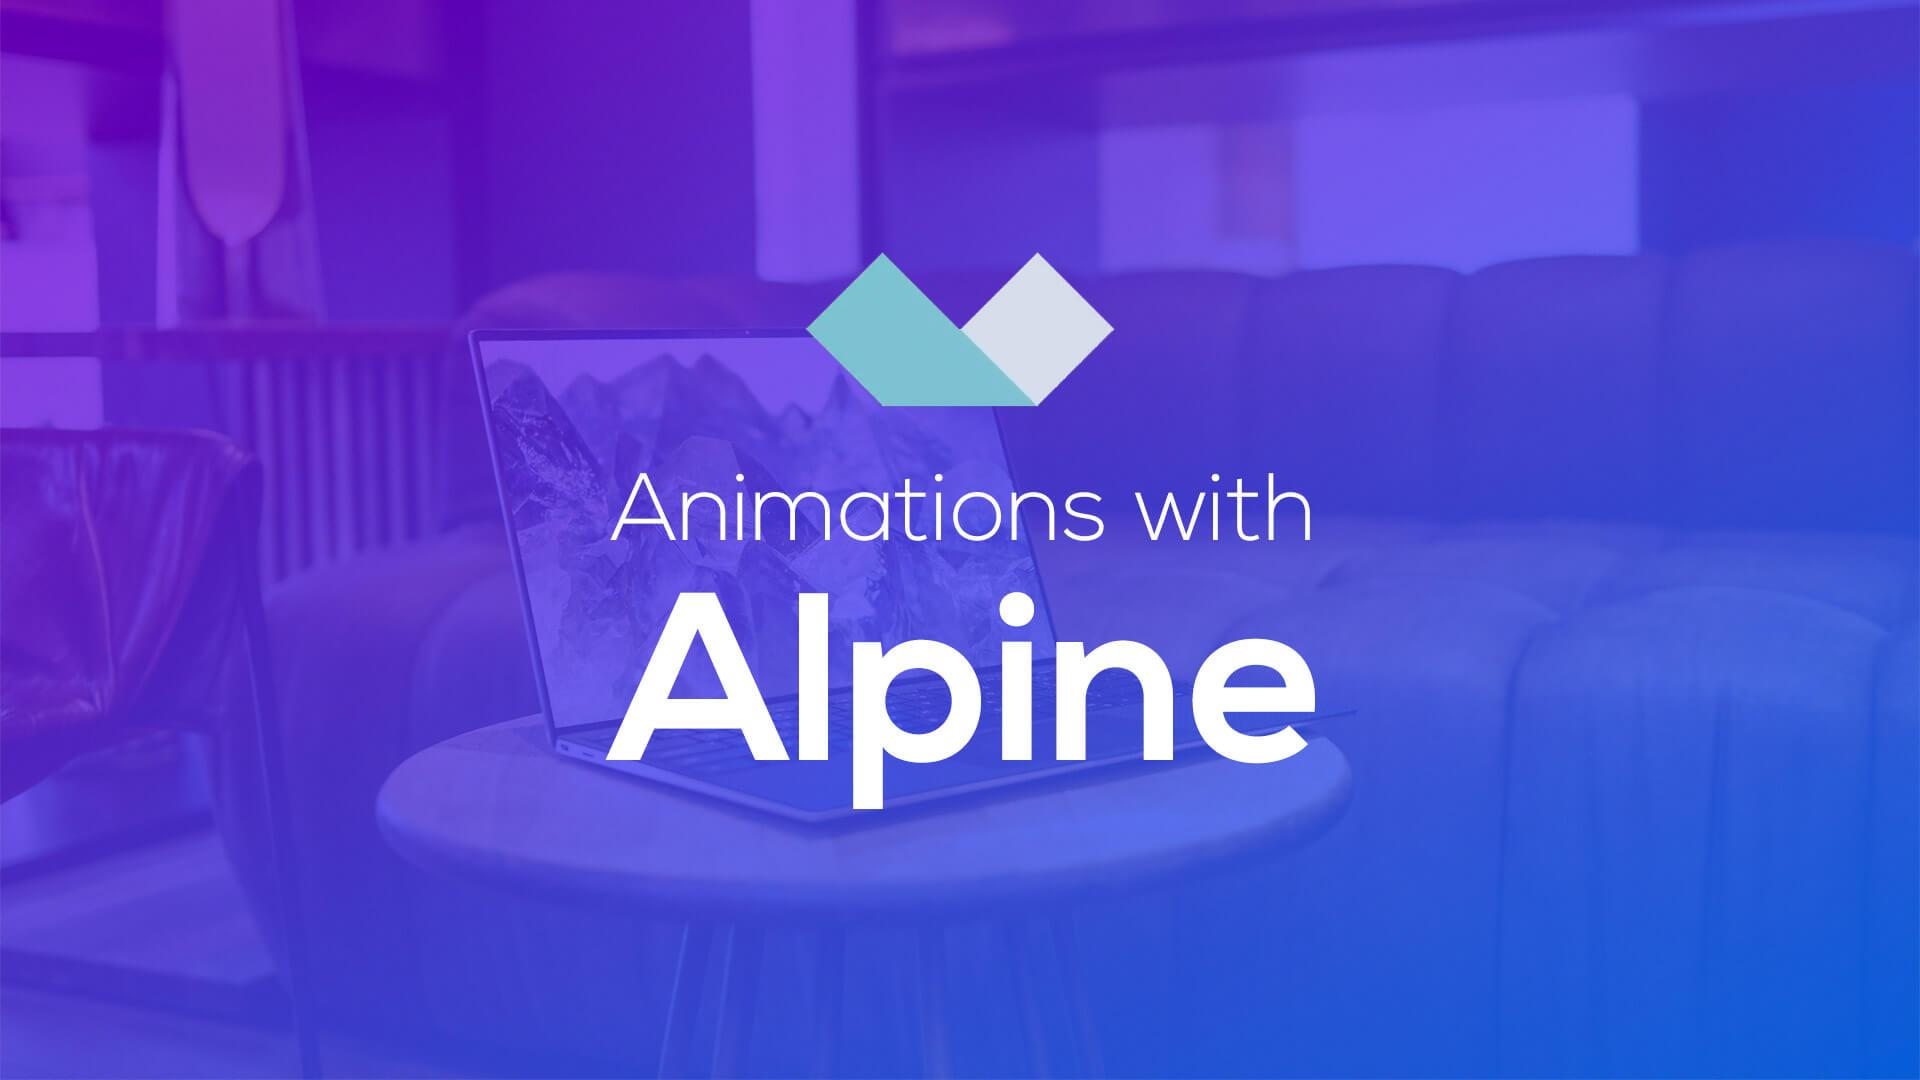 Animations with Alpine